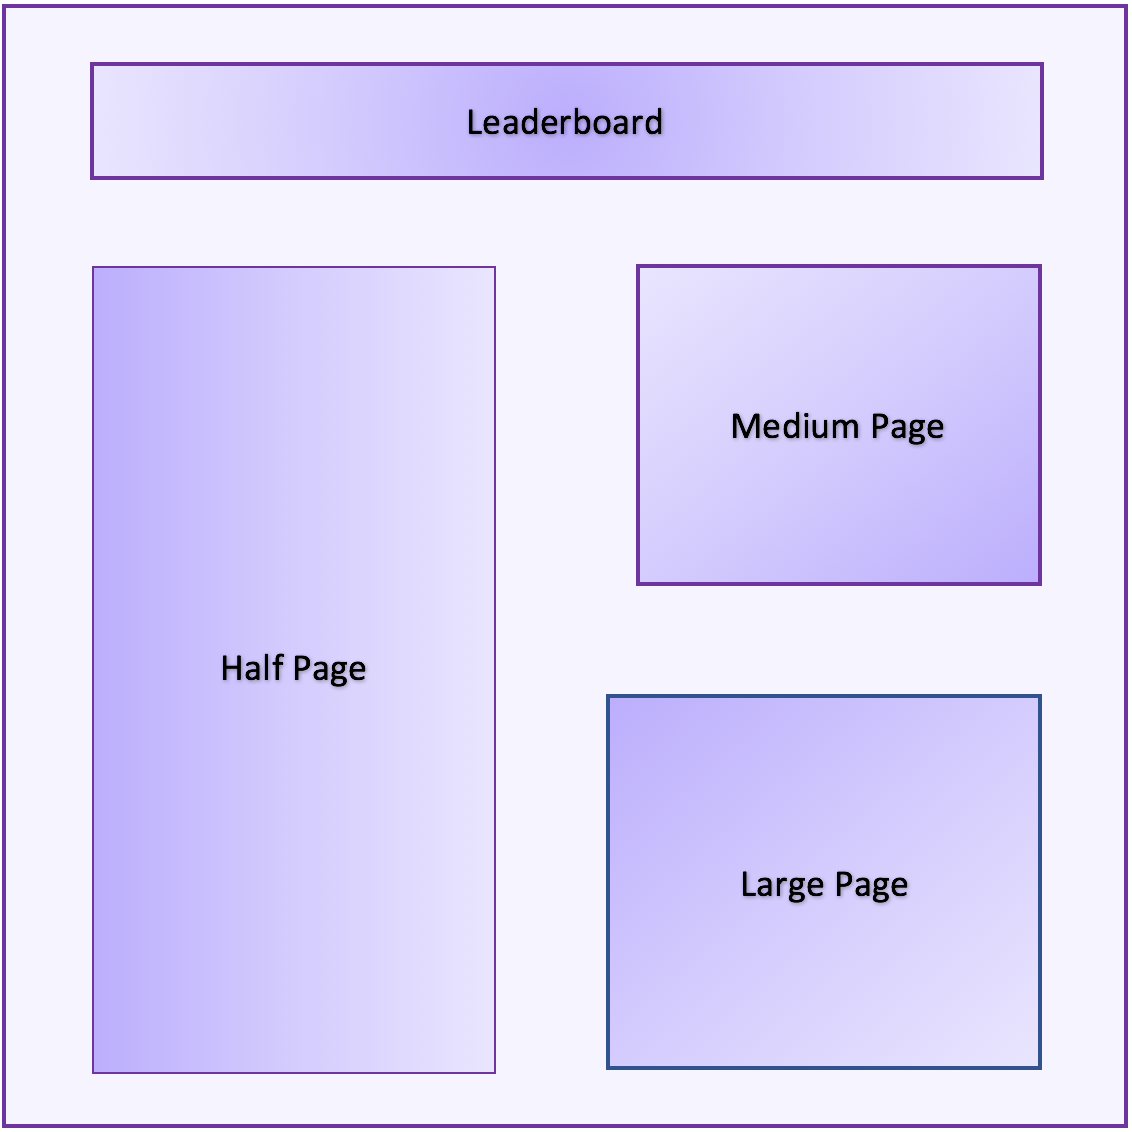 The most popular banner ad sizes